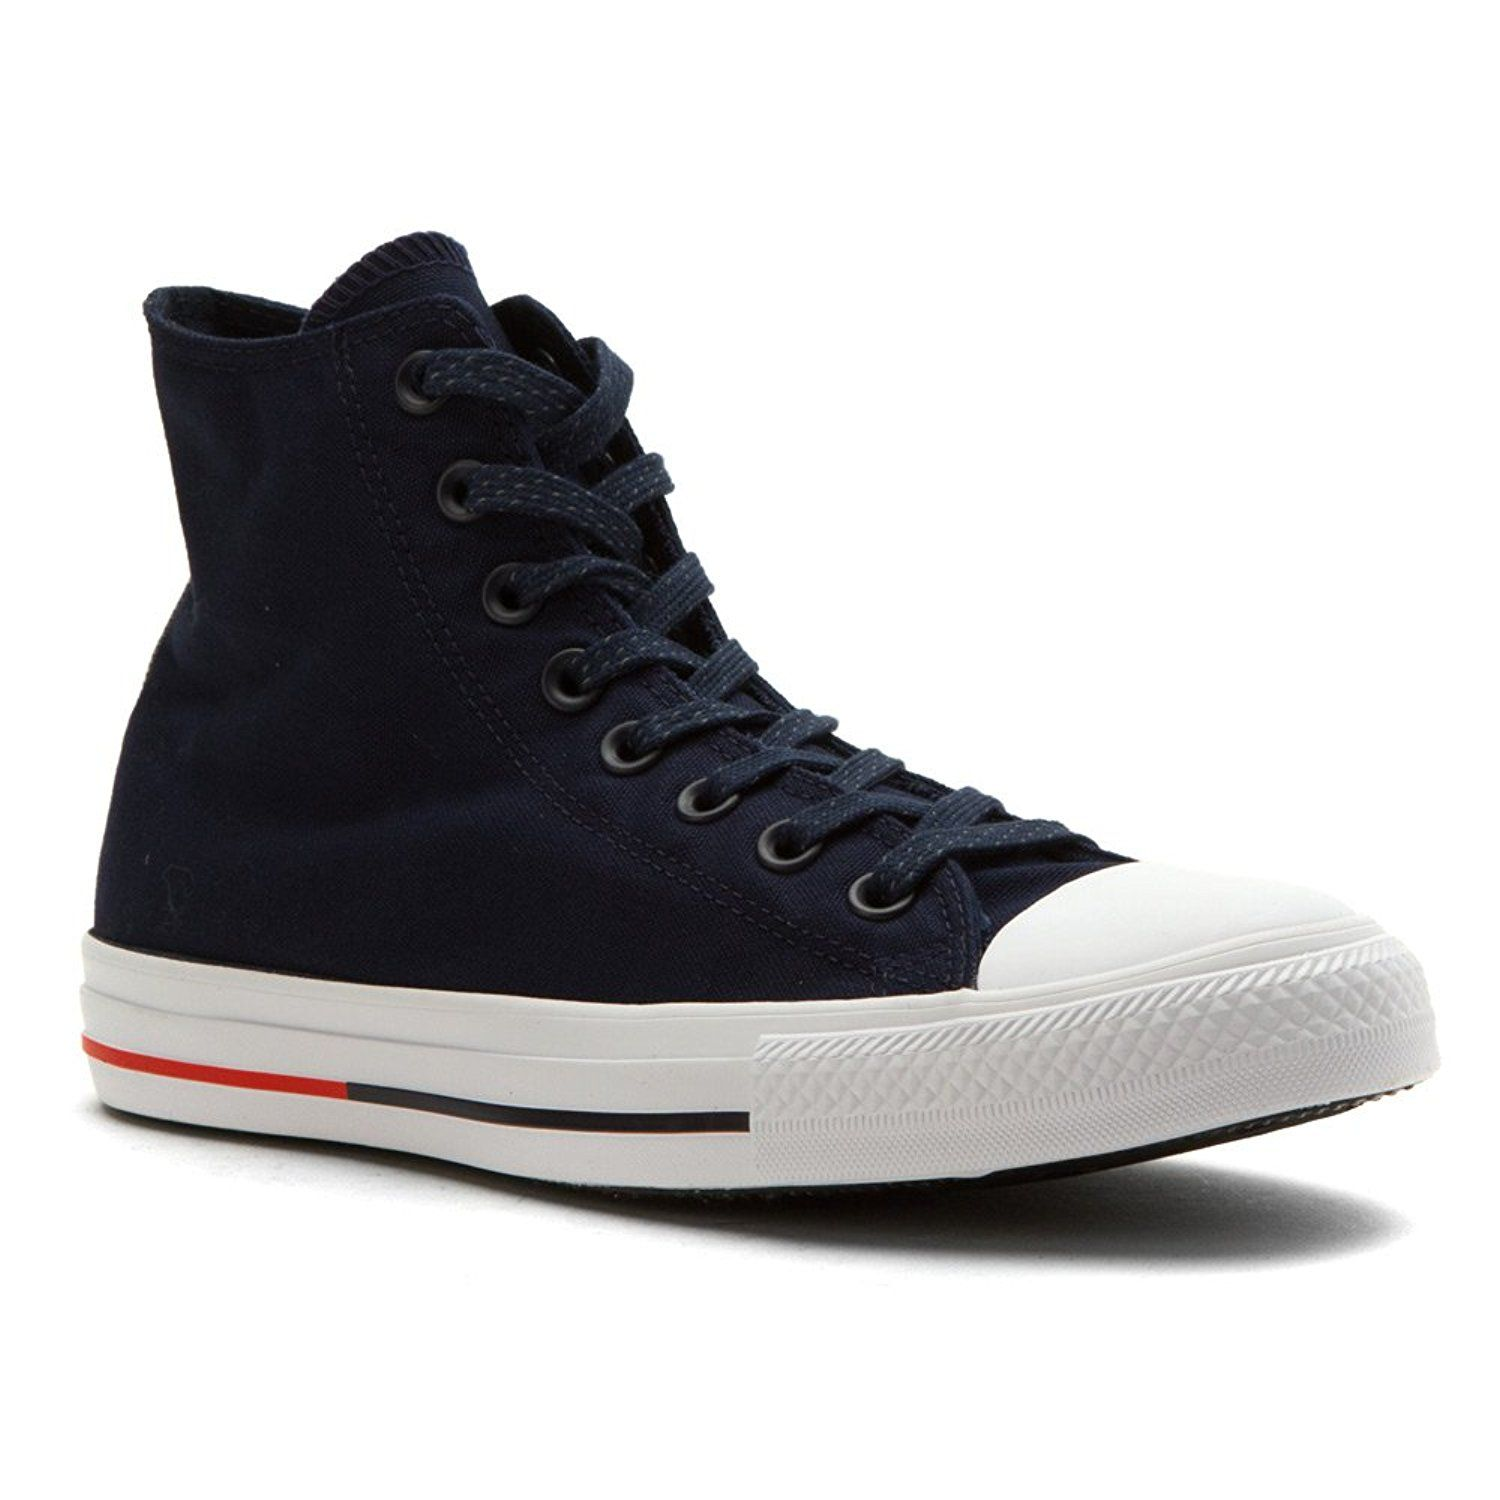 Converse Men's Chuck Taylor All Star Core Hi *** Don't get left behind, see  this great product : Mens shoes sneakers